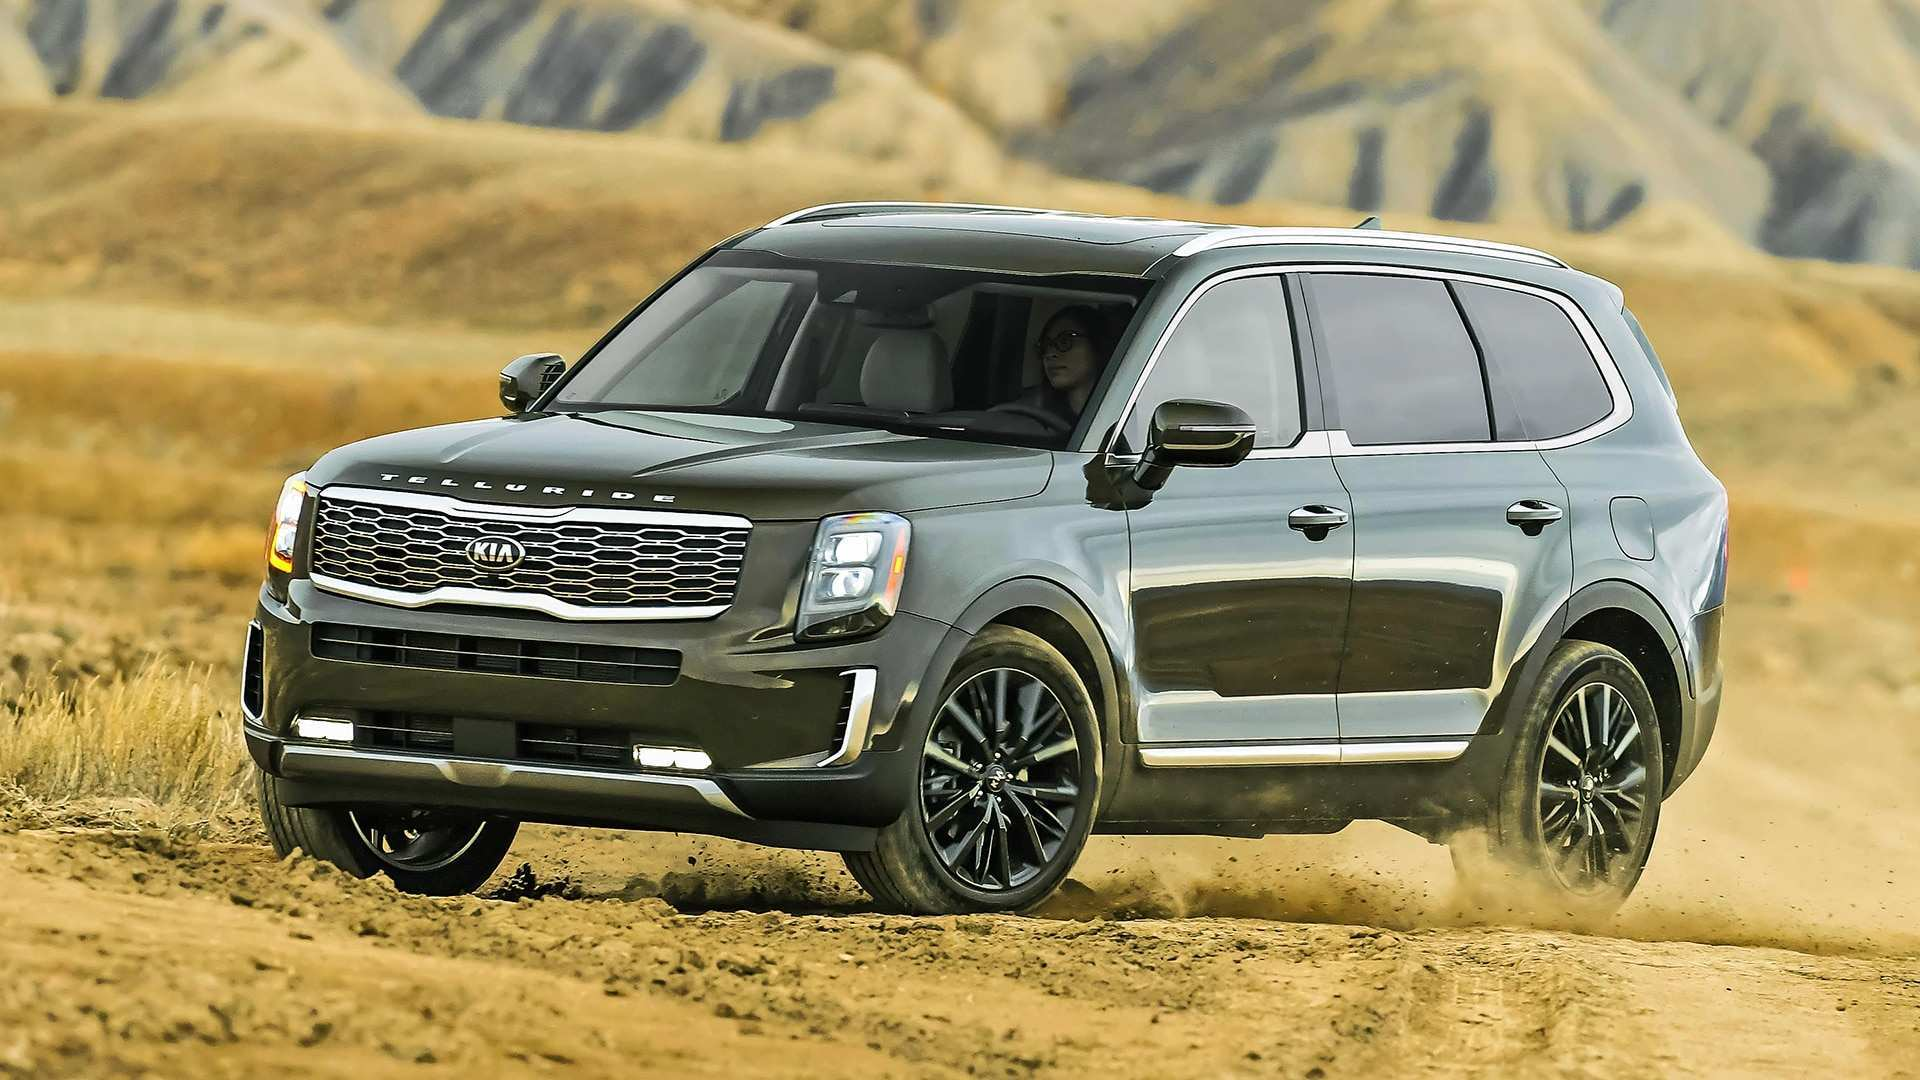 67 Concept of How Much Is The 2020 Kia Telluride Picture with How Much Is The 2020 Kia Telluride